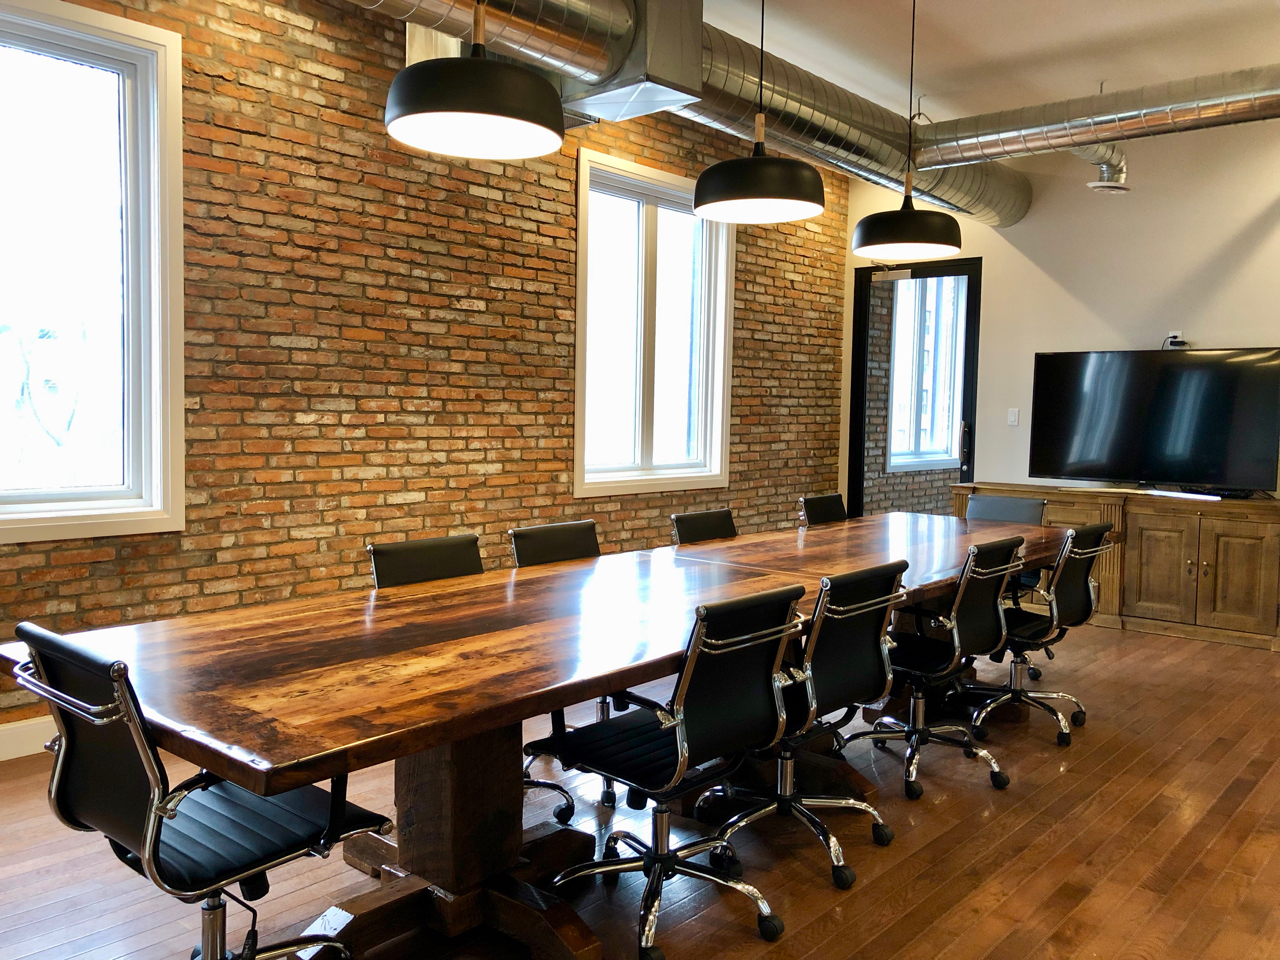 Brick-And-Beam Office - Malleum transformed this yellow cinderblock-walled room at The Wellington into a contemporary, brick-and-beam office. Additional windows, and new, glass-walled interior rooms, bathe the entire space in sunlight.Building upon Hamilton's storied history, the accent walls feature reclaimed local brick, the conference table is made from reclaimed barn board, and the light fixtures have an industrial aesthetic.